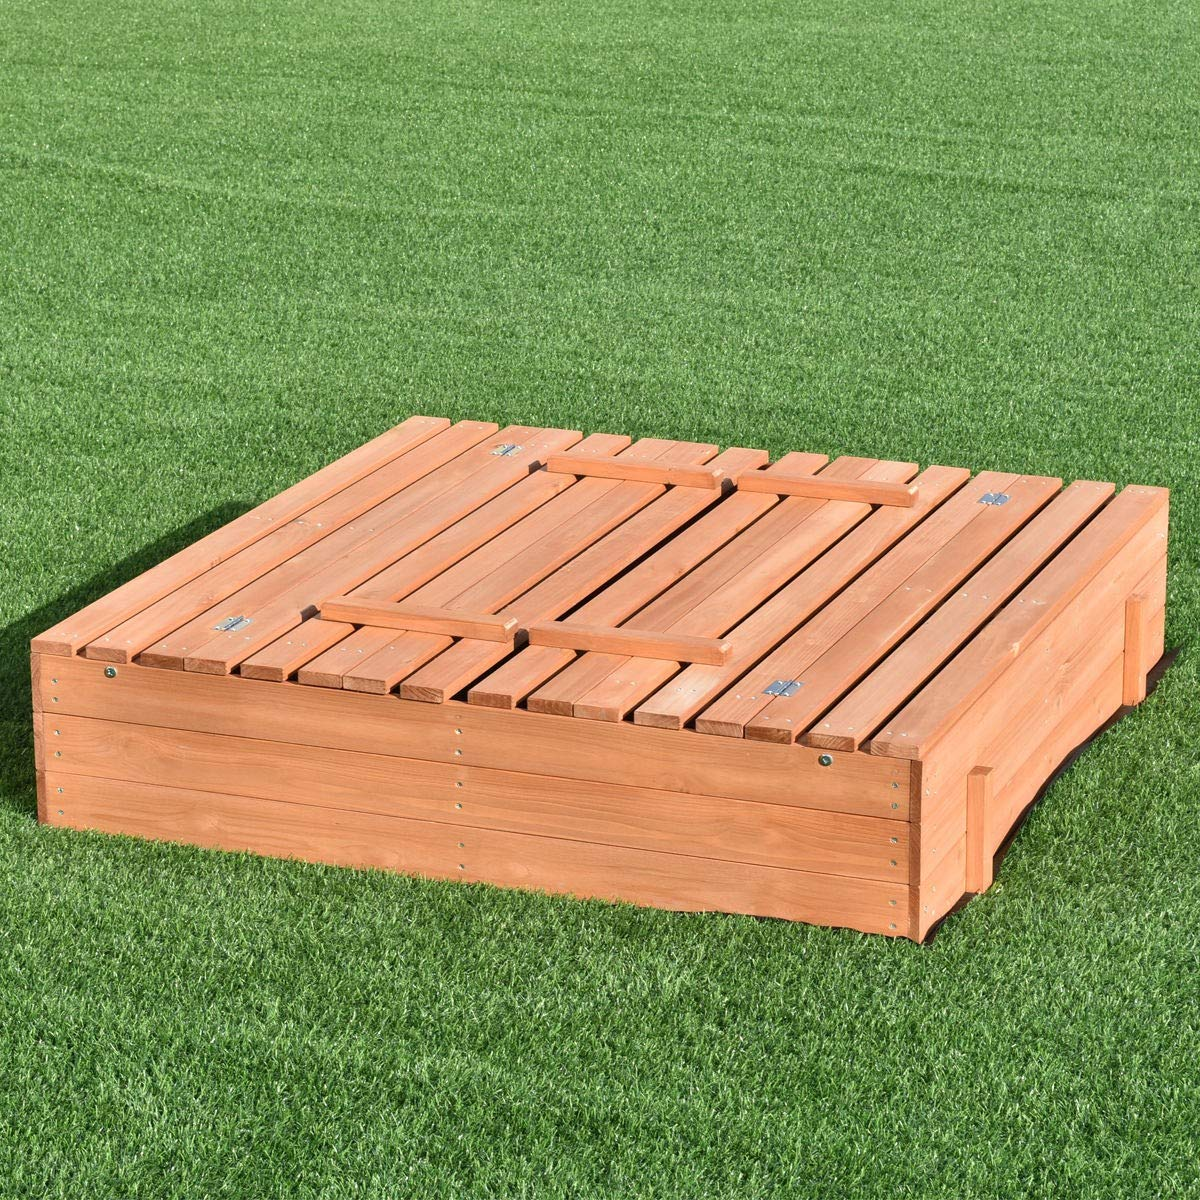 USA_BEST_SELLER Children Outdoor Foldable Retractable Sandbox Bench Seat Box by USA_BEST_SELLER (Image #2)